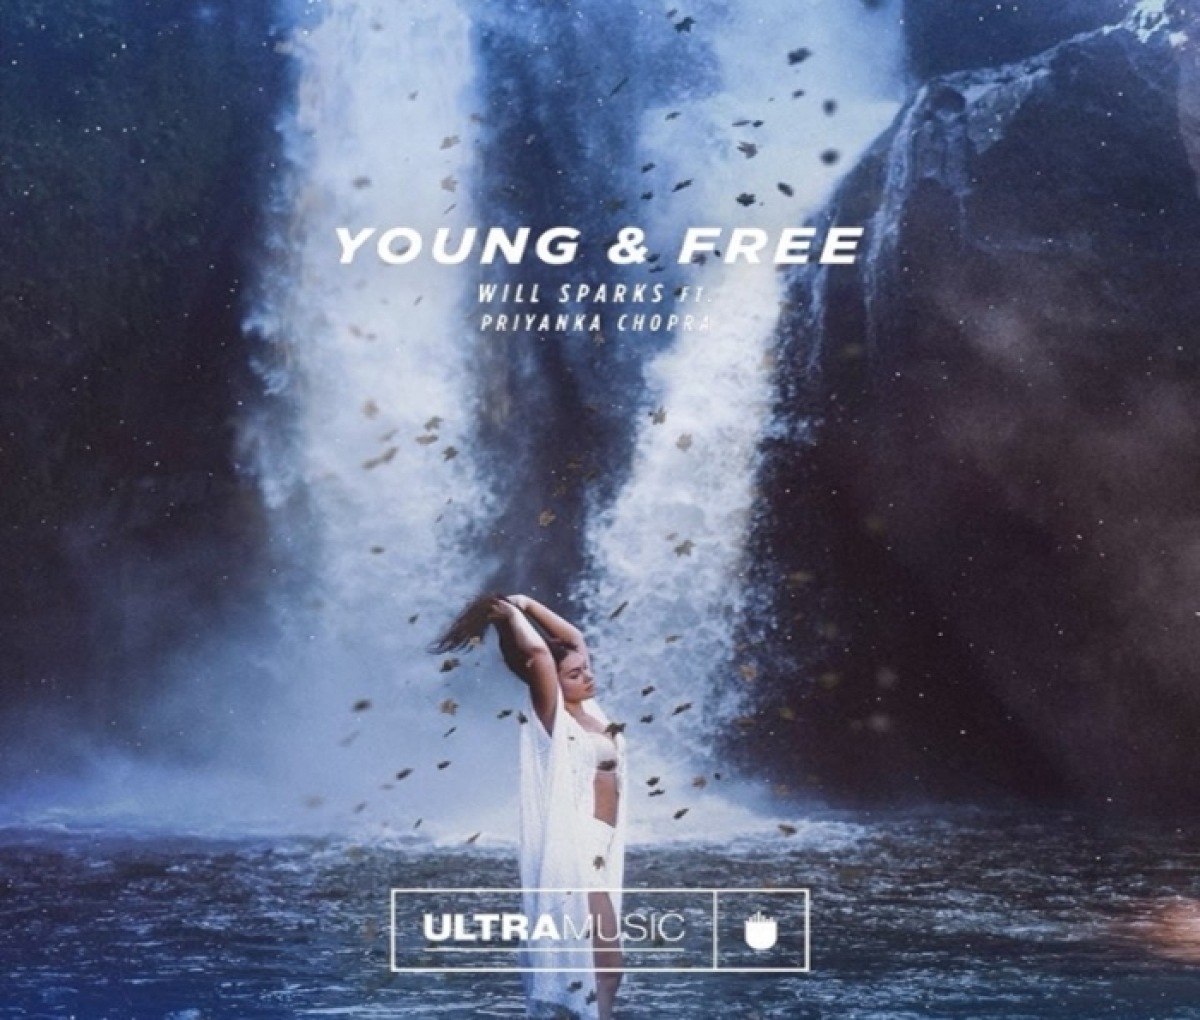 PeeCee is 'Young and Free' in the sneak peek of her latest single